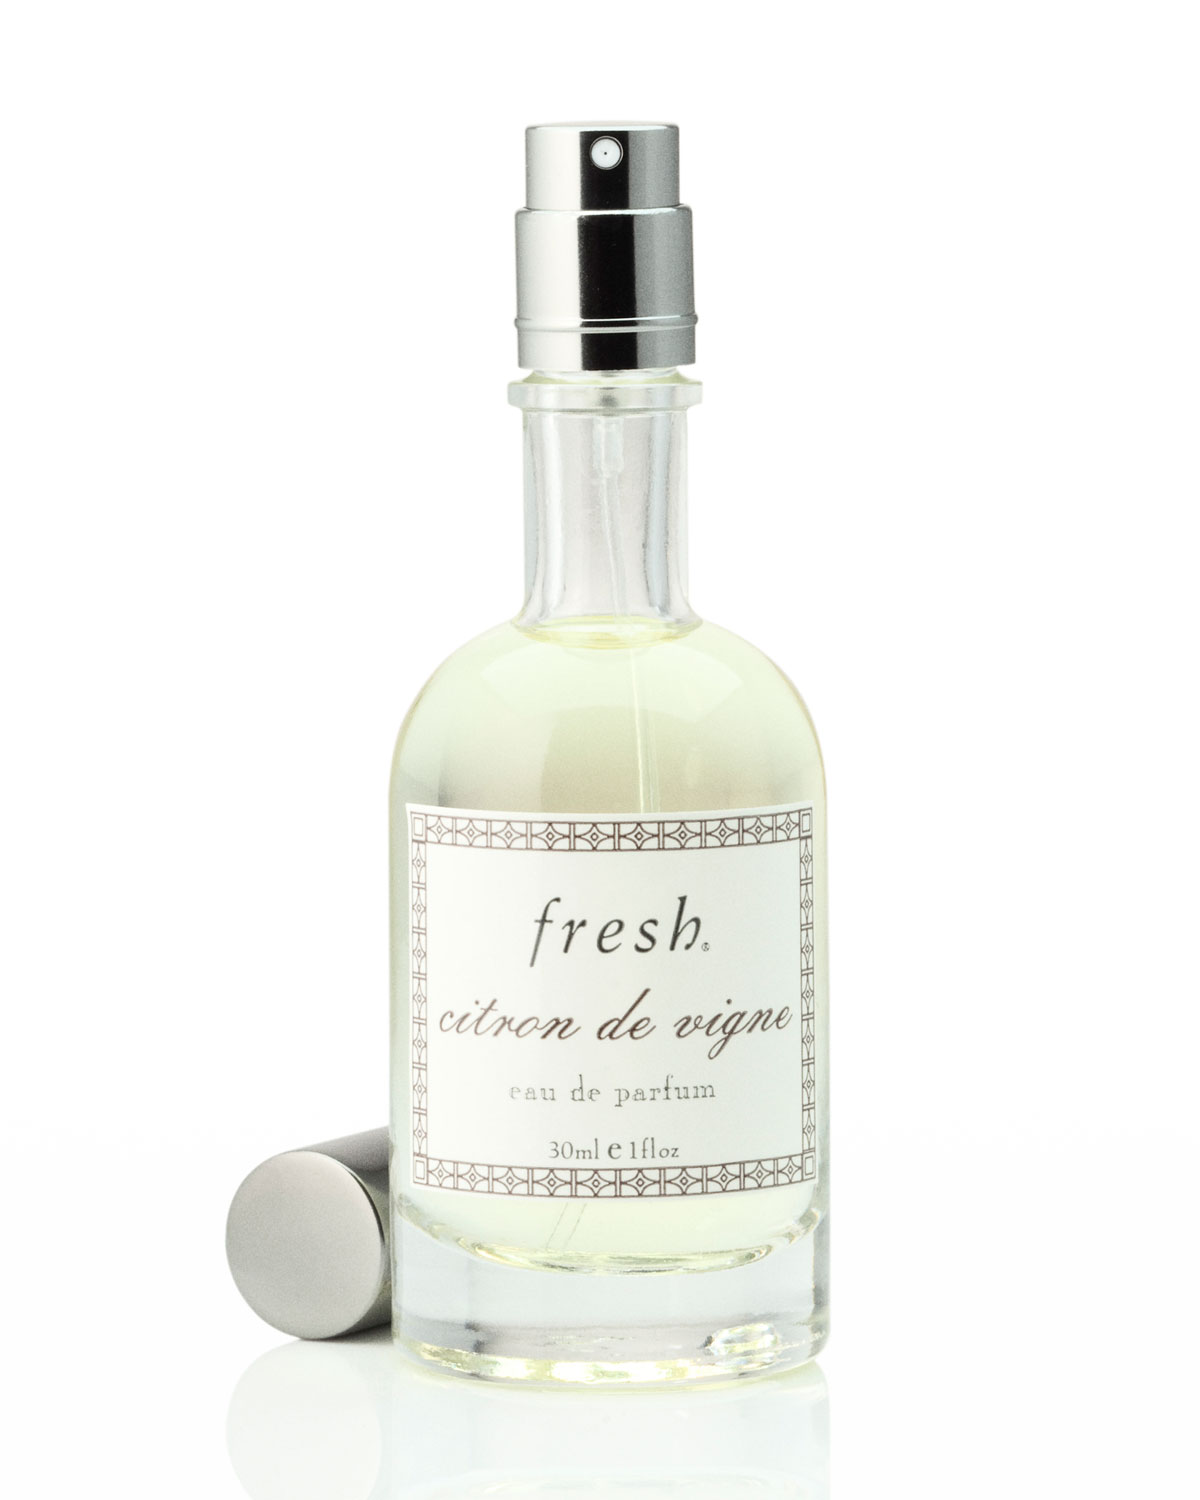 fresh eau de parfum review